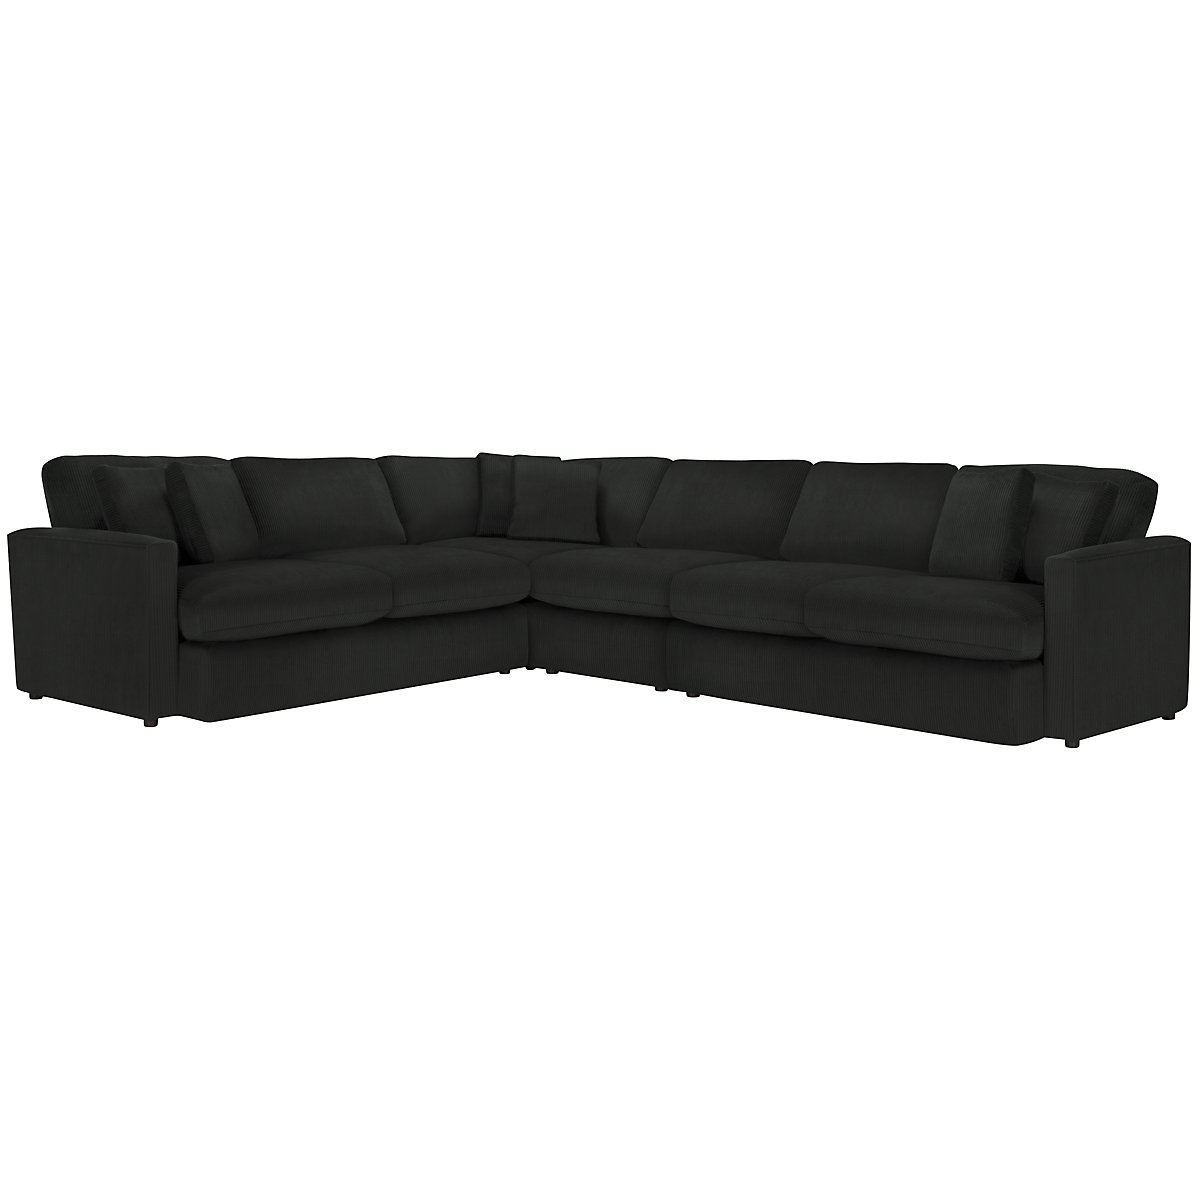 Tara2 Dark Gray Microfiber Large Two-Arm Sectional